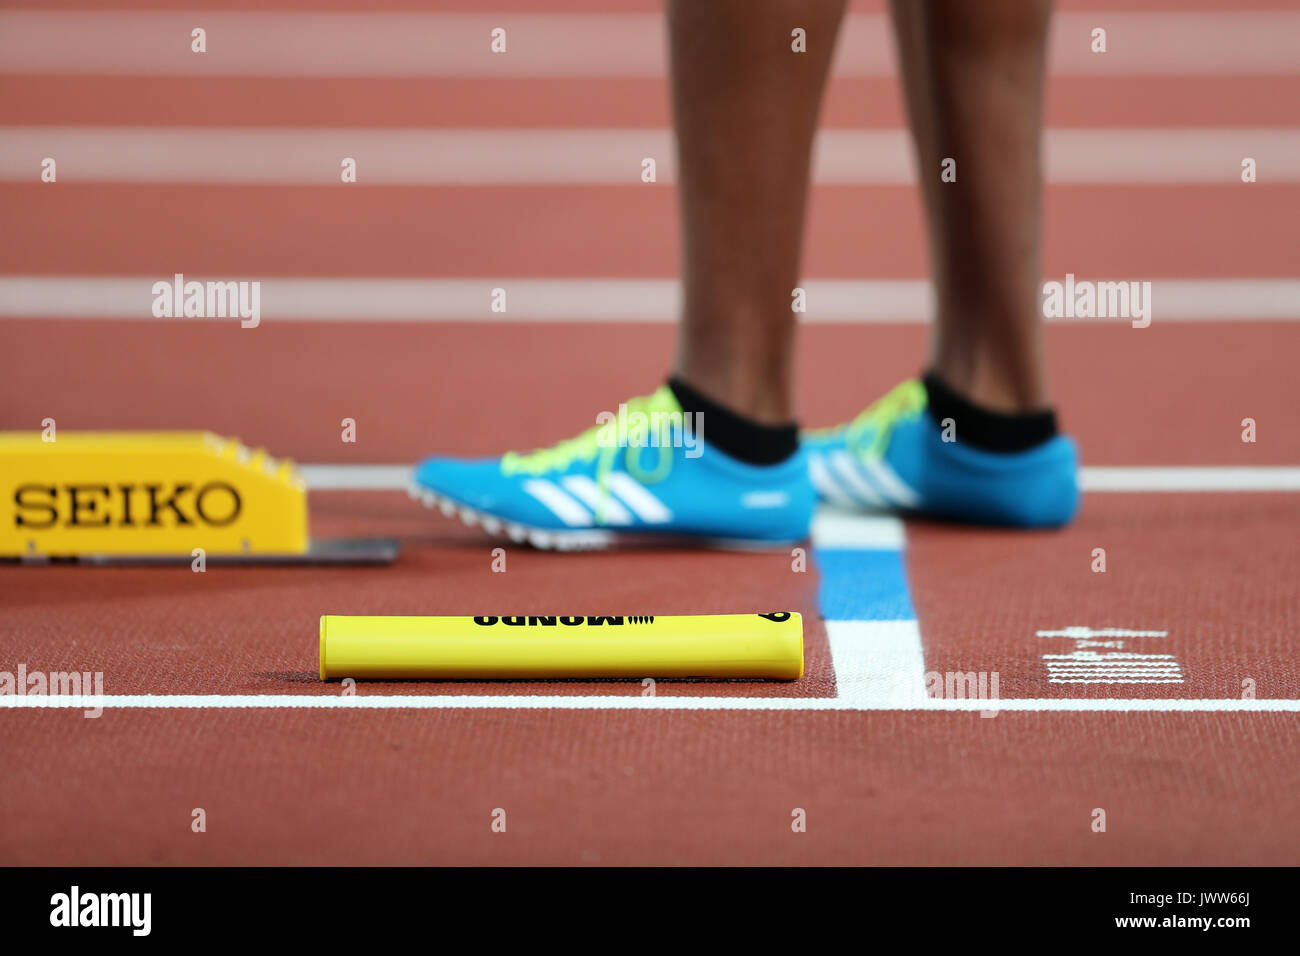 London, UK. 13th August 2017. Chrisann GORDON measuring her starting blocks for the first leg for Jamaica in the Women's 4 x 400m Final at the 2017 IAAF World Championships, Queen Elizabeth Olympic Park, Stratford, London, UK. Credit: Simon Balson/Alamy Live News - Stock Image